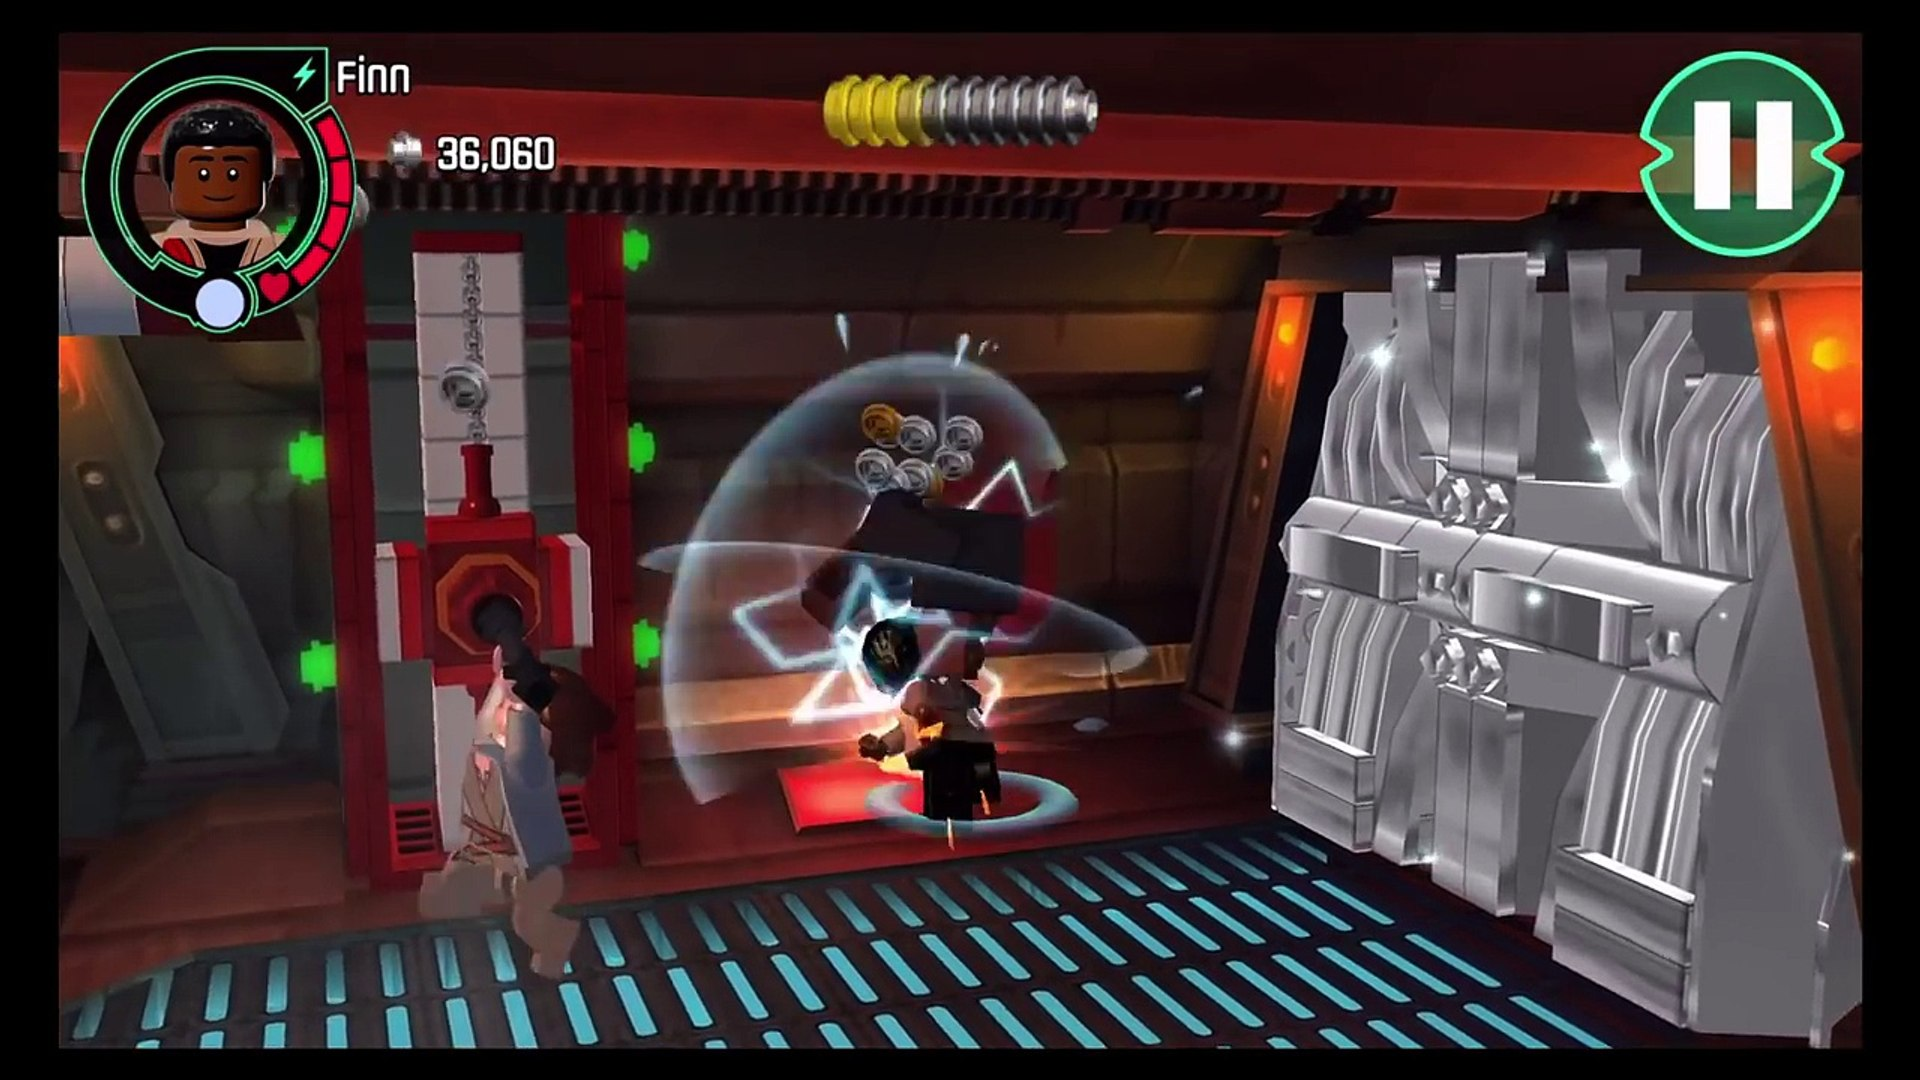 Lego Star Wars The Force Awakens Ios Android Walkthrough